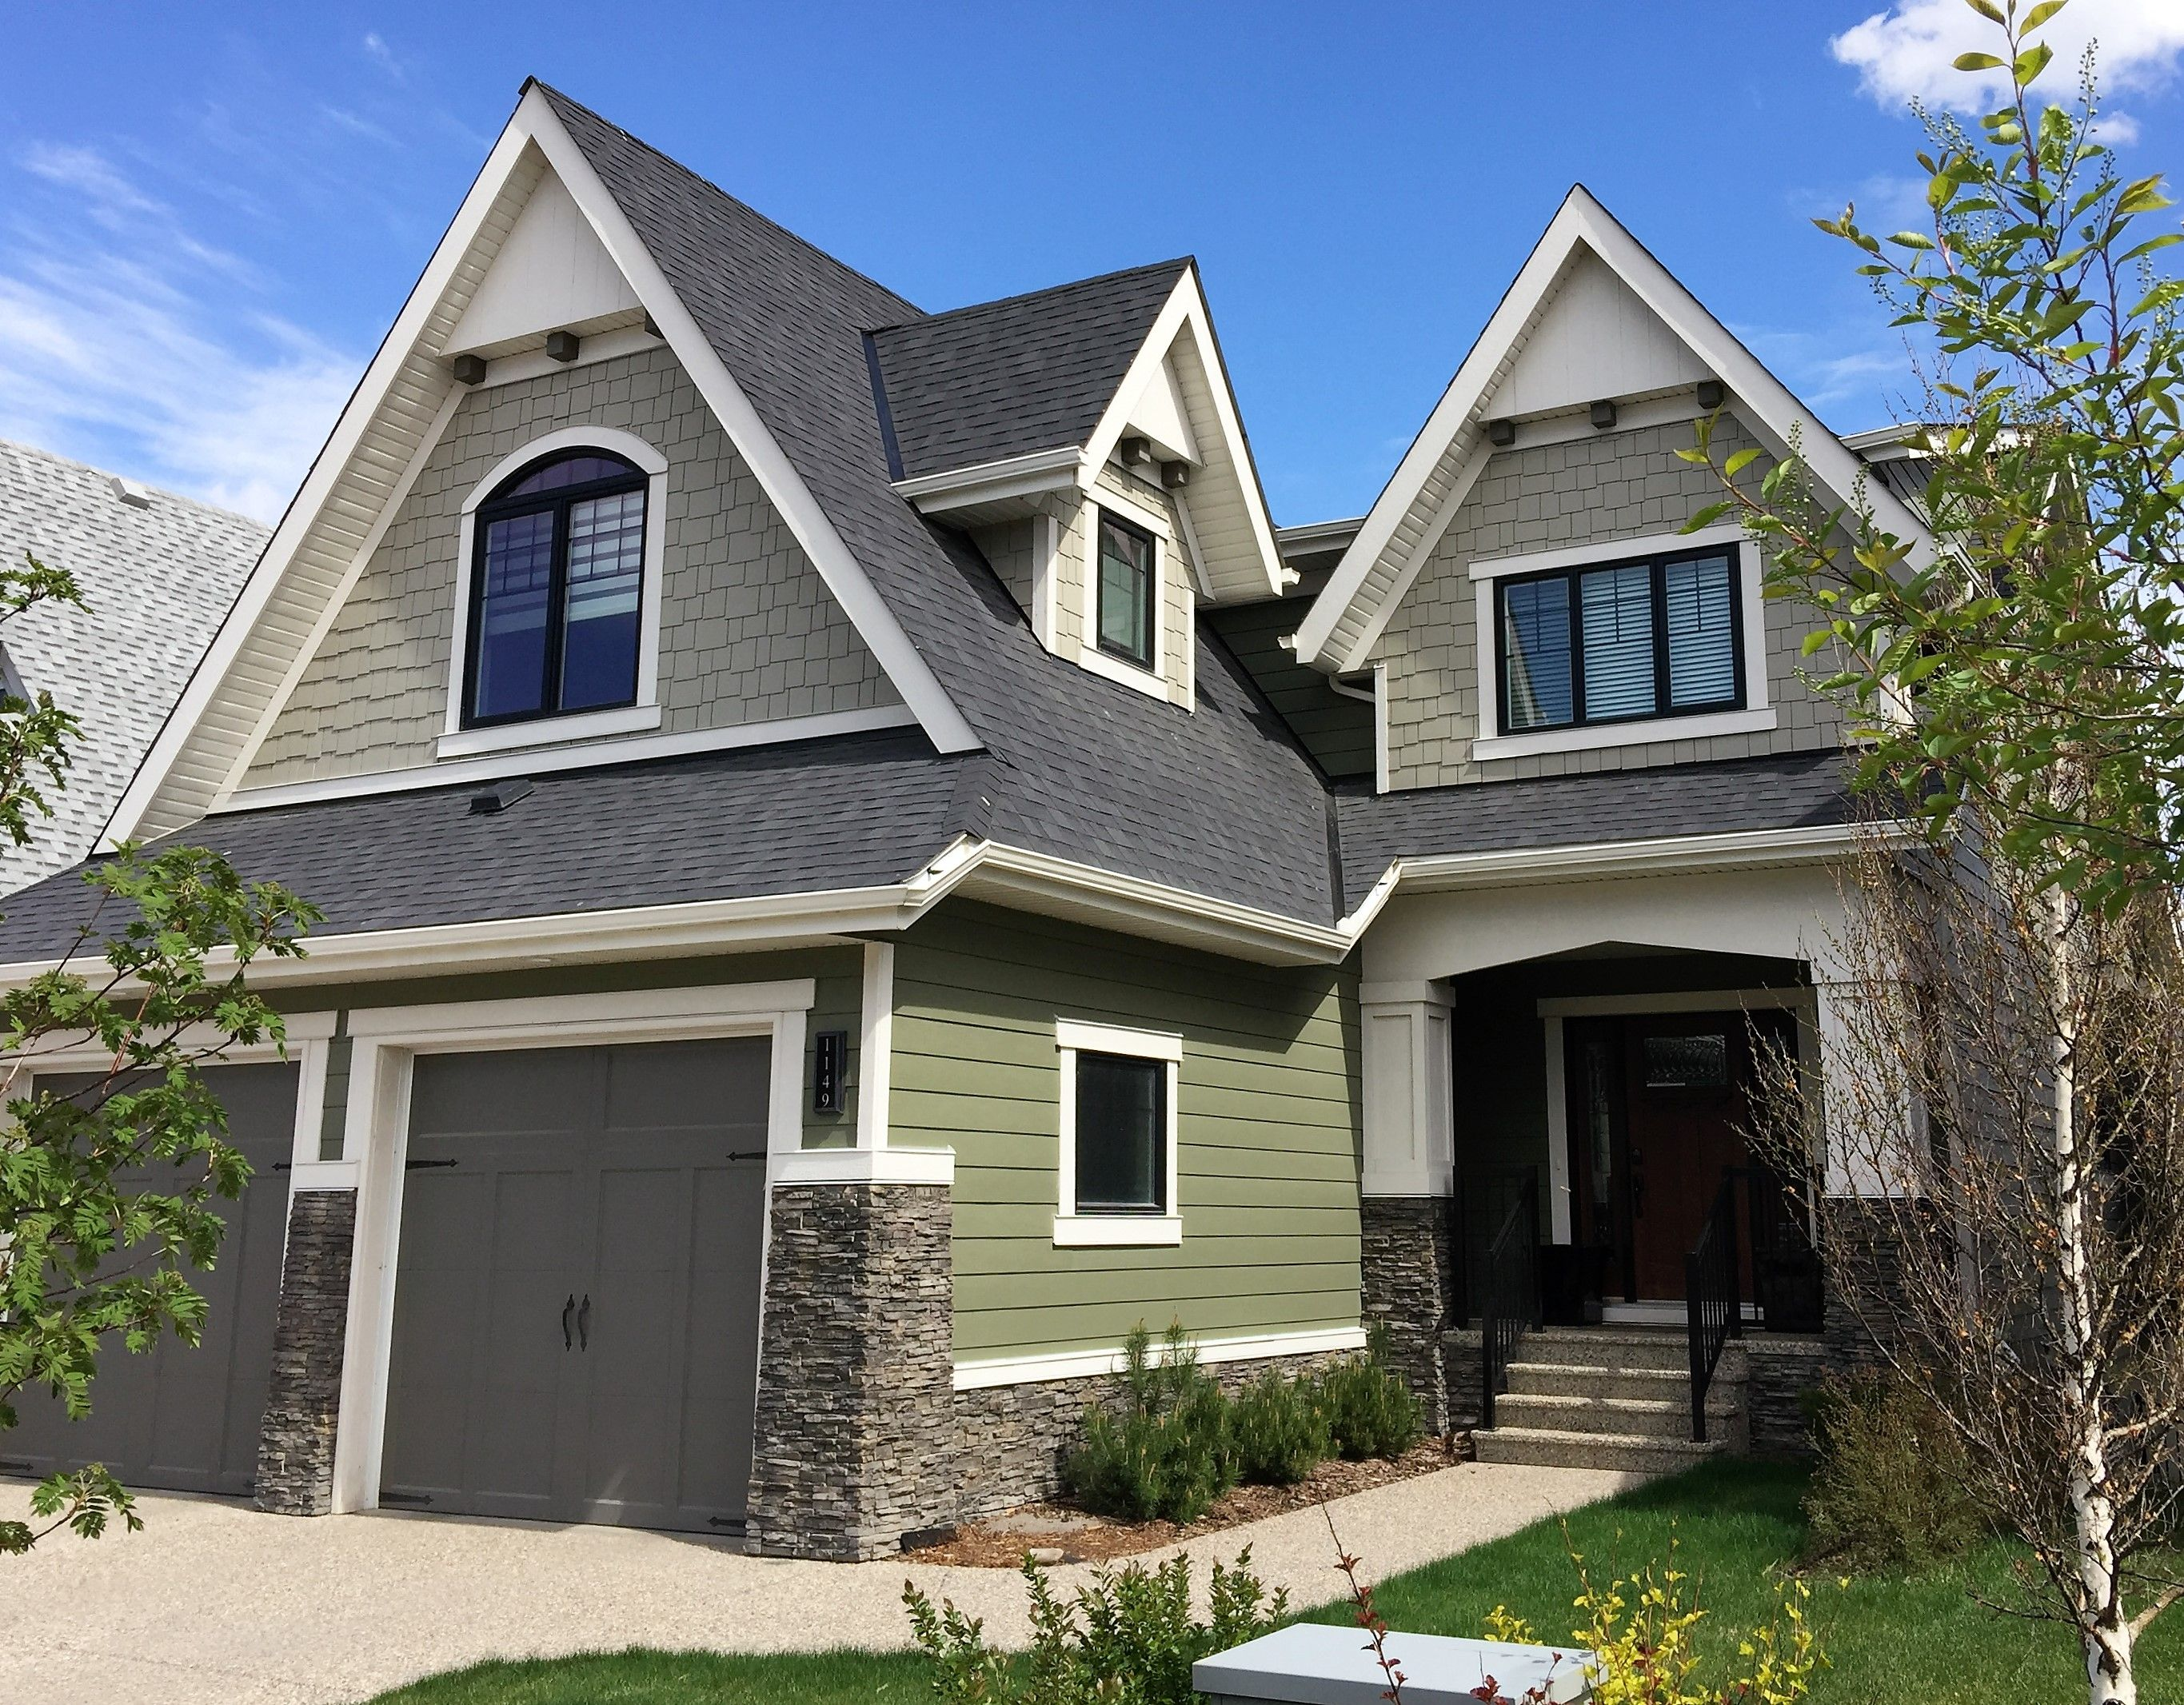 Steep Roof Pitches Craftsman Inspired Exterior Colours And Lovely Dormer On This Crafstman Home Crafst House Exterior Traditional Architecture House Styles